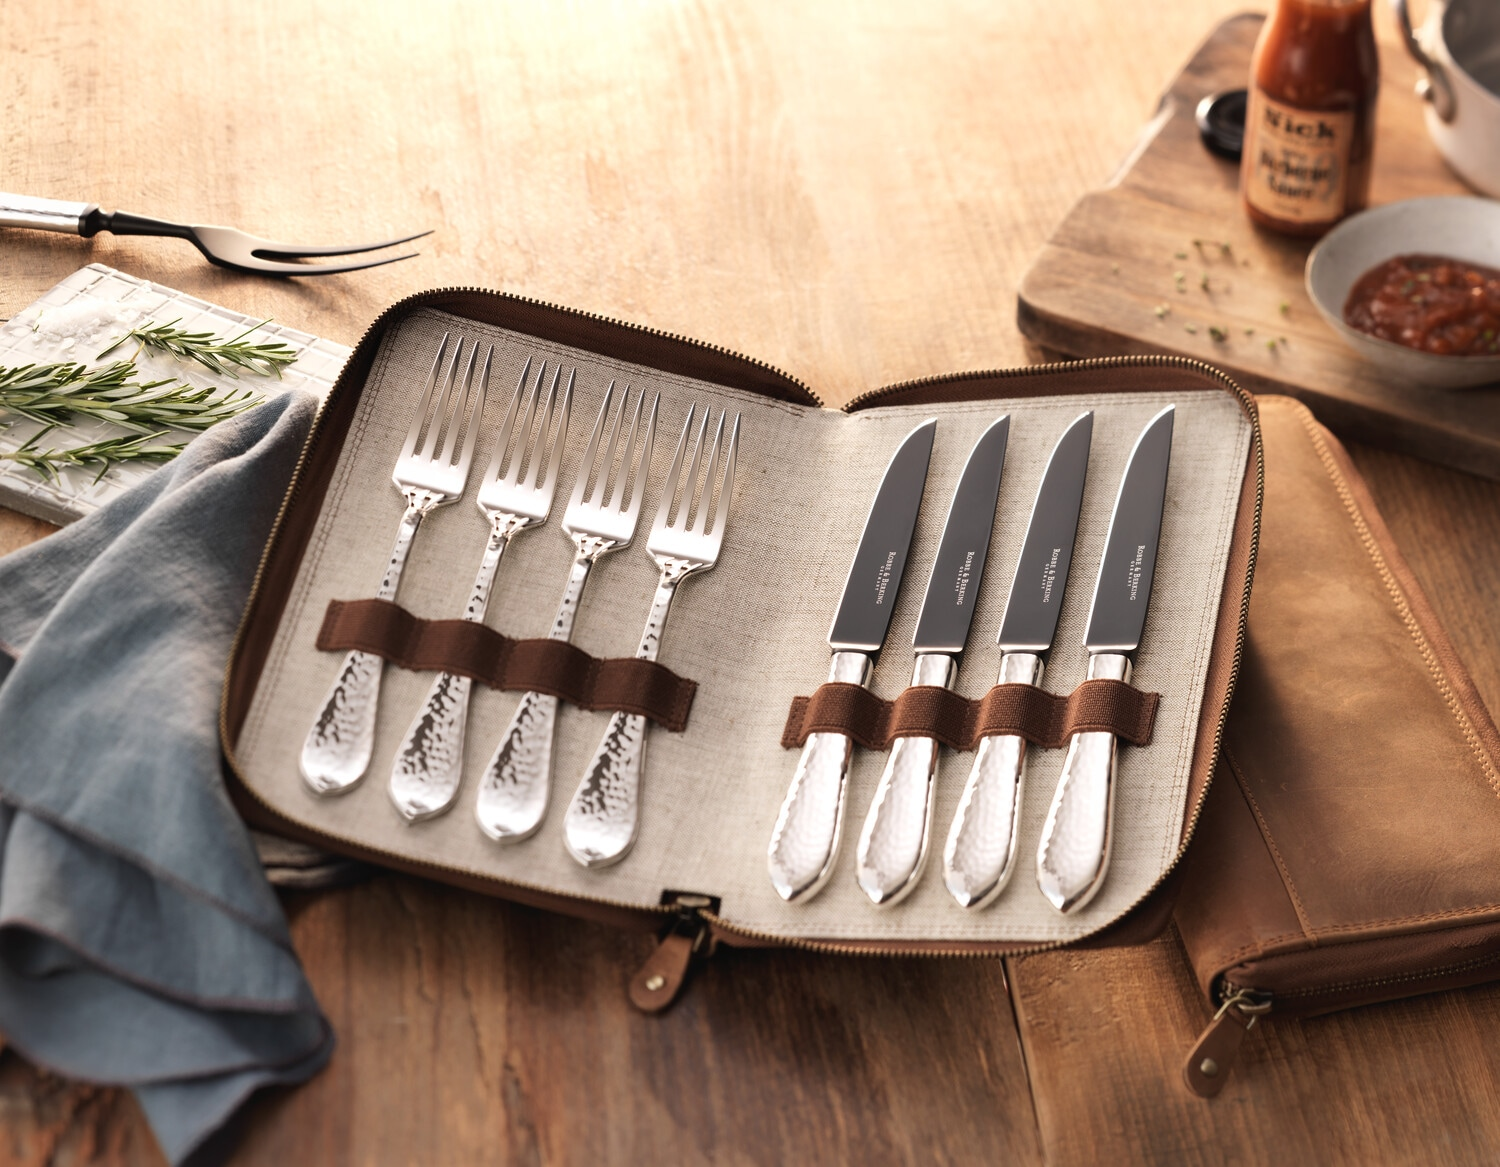 The designs are hand-engraved and the now German brand offers bespoke services to families and individuals wanting to engrave their names on the cutlery.